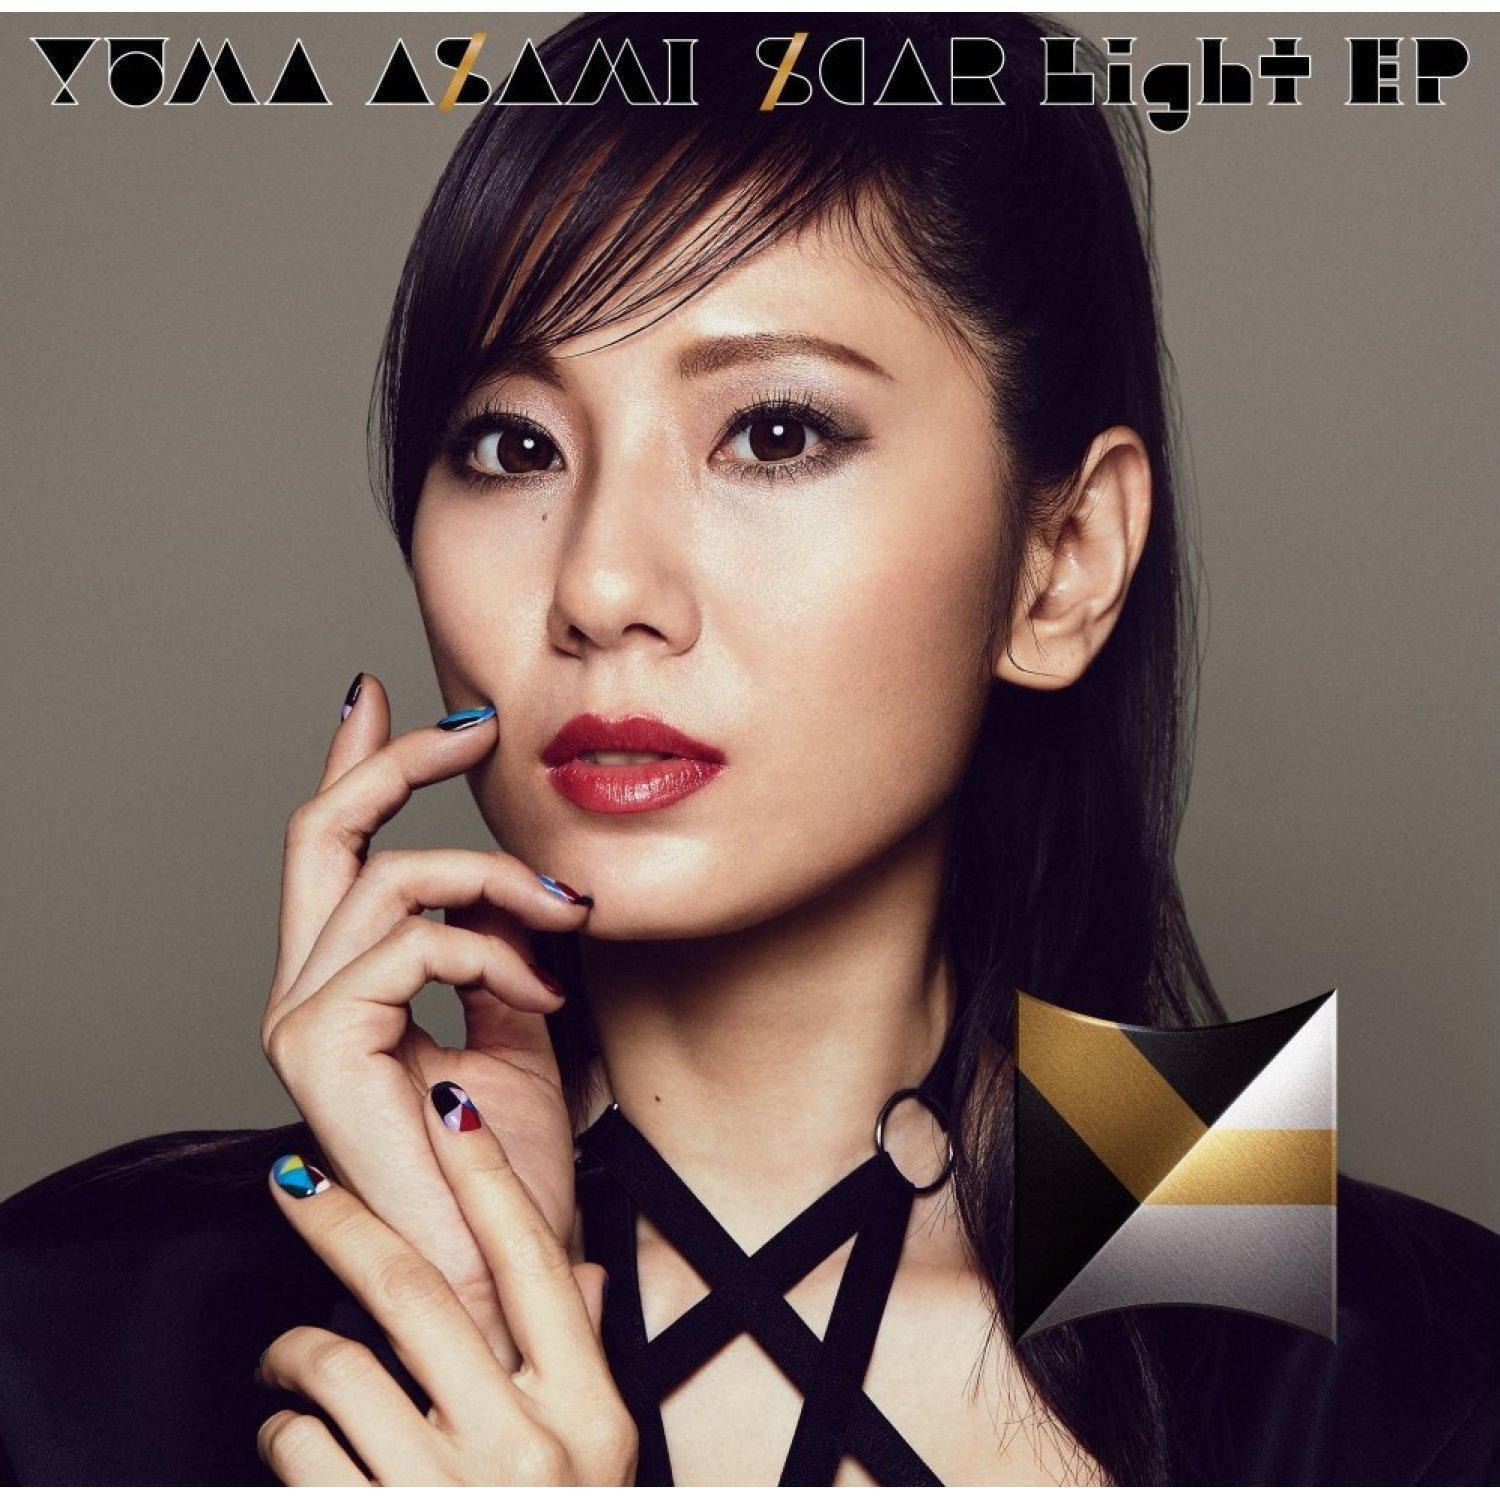 j-pop - scar light ep (yuma asami)